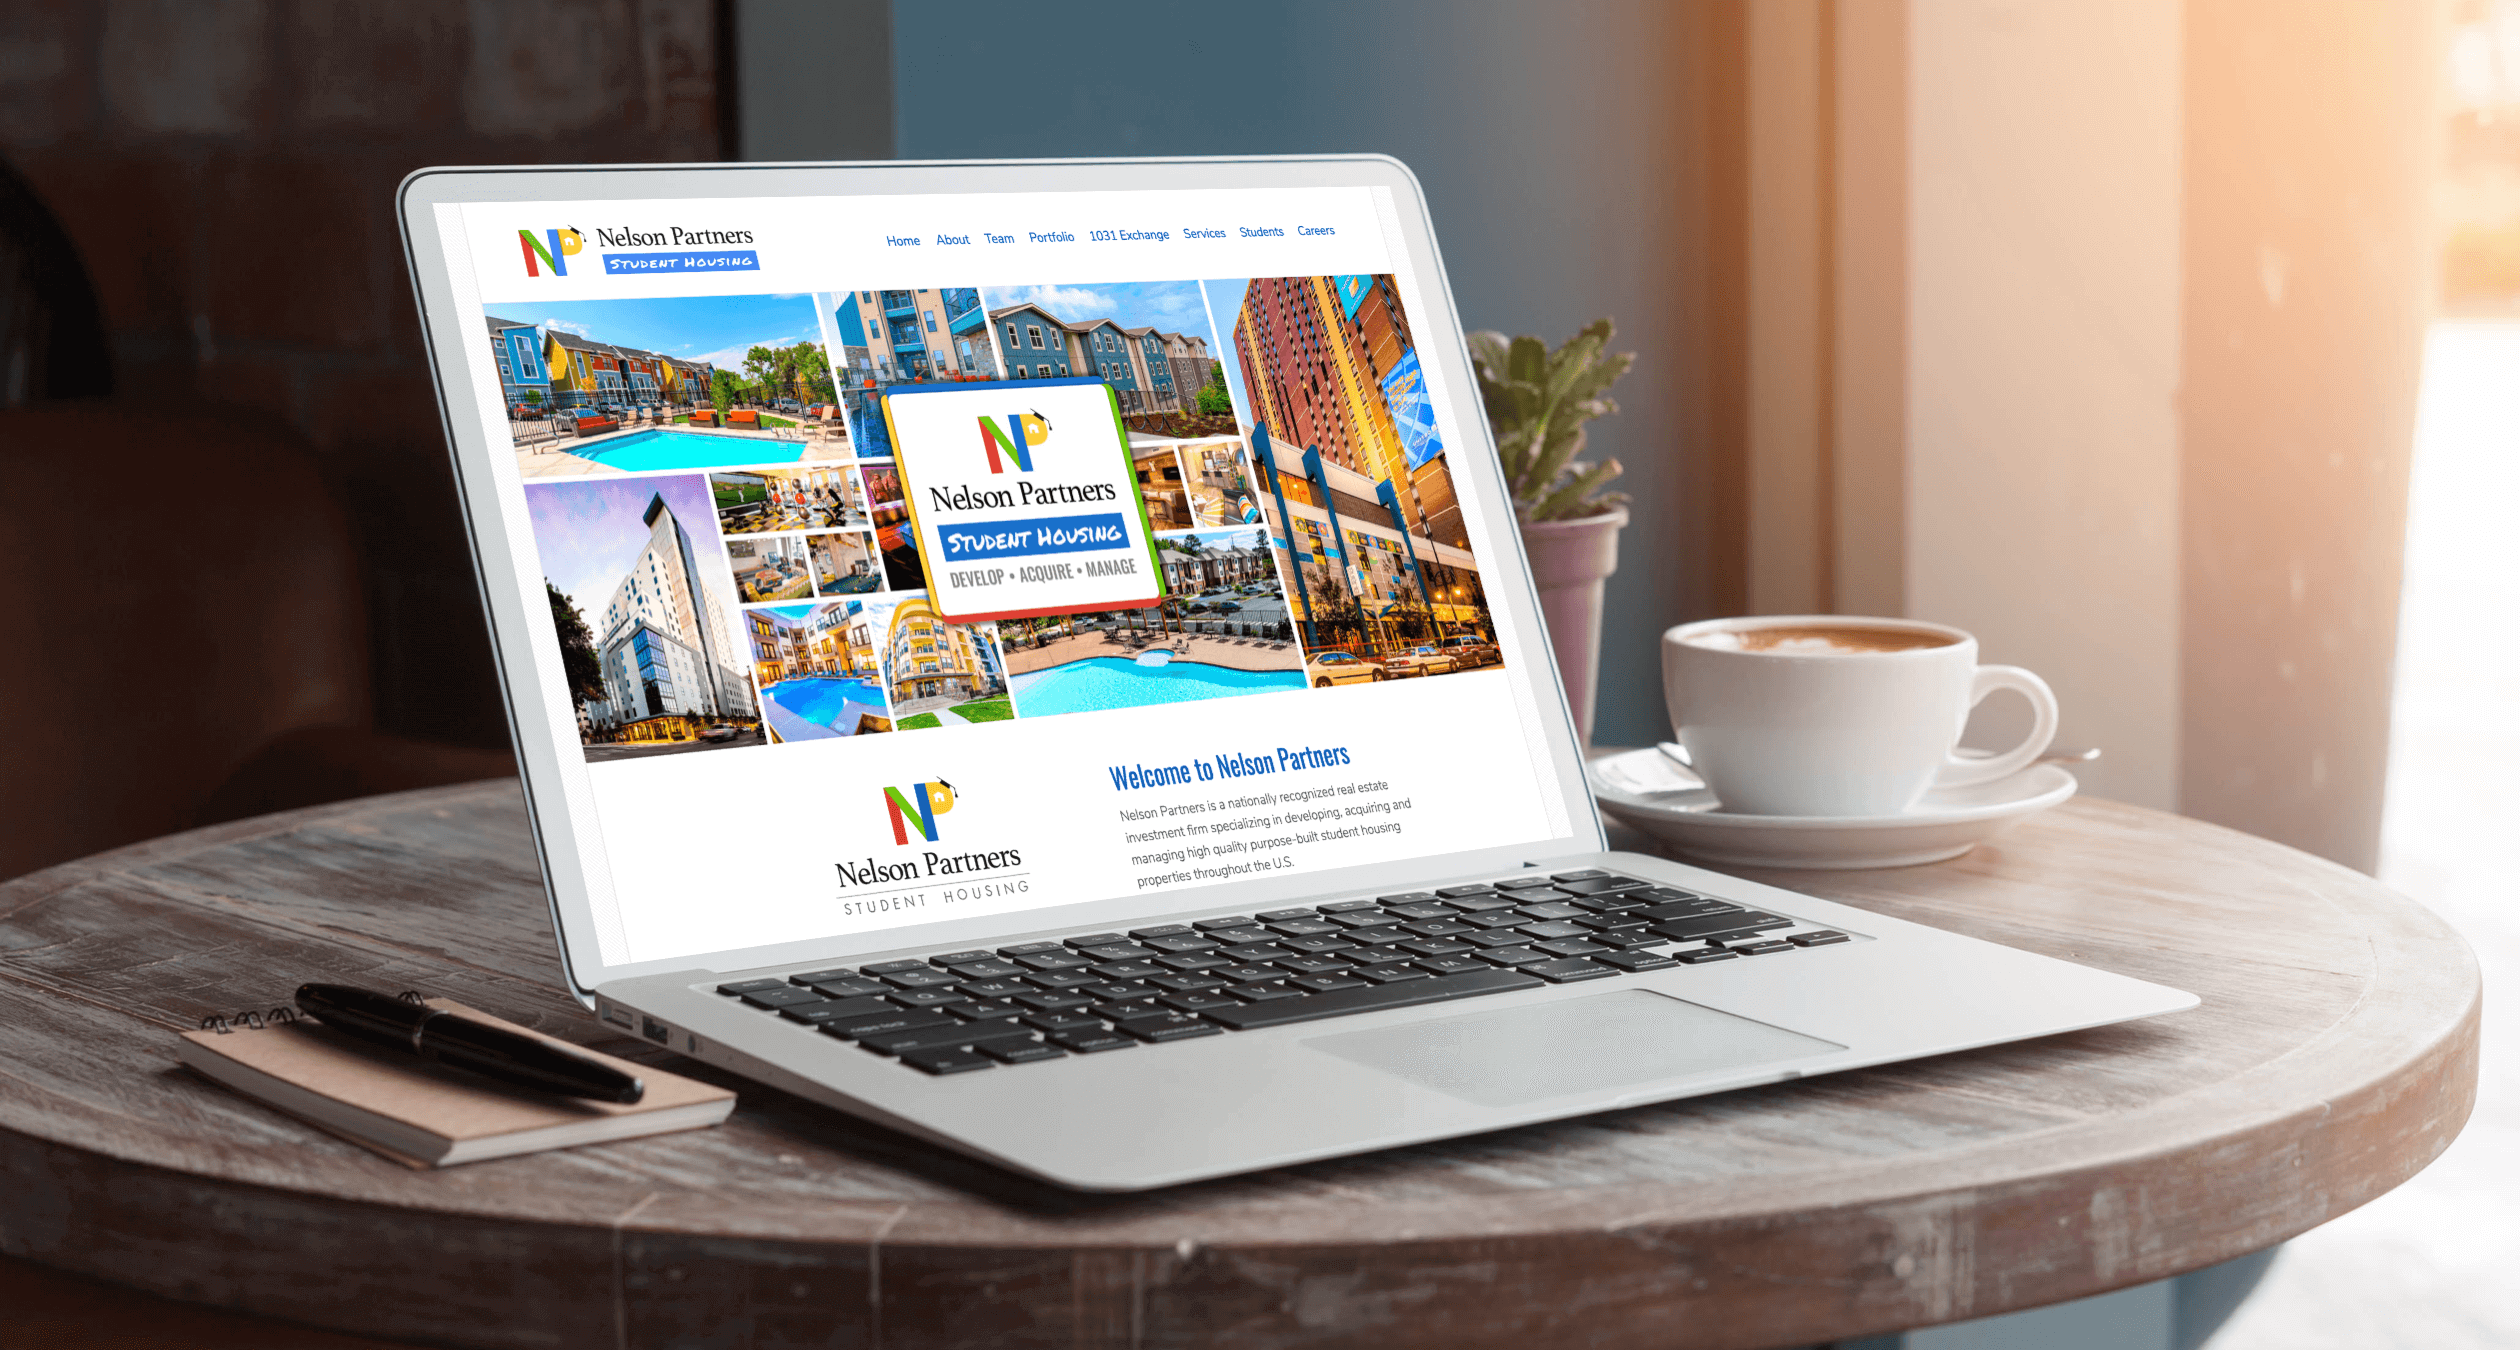 Nelson-Partners-Student-Housing-Apartments-Website